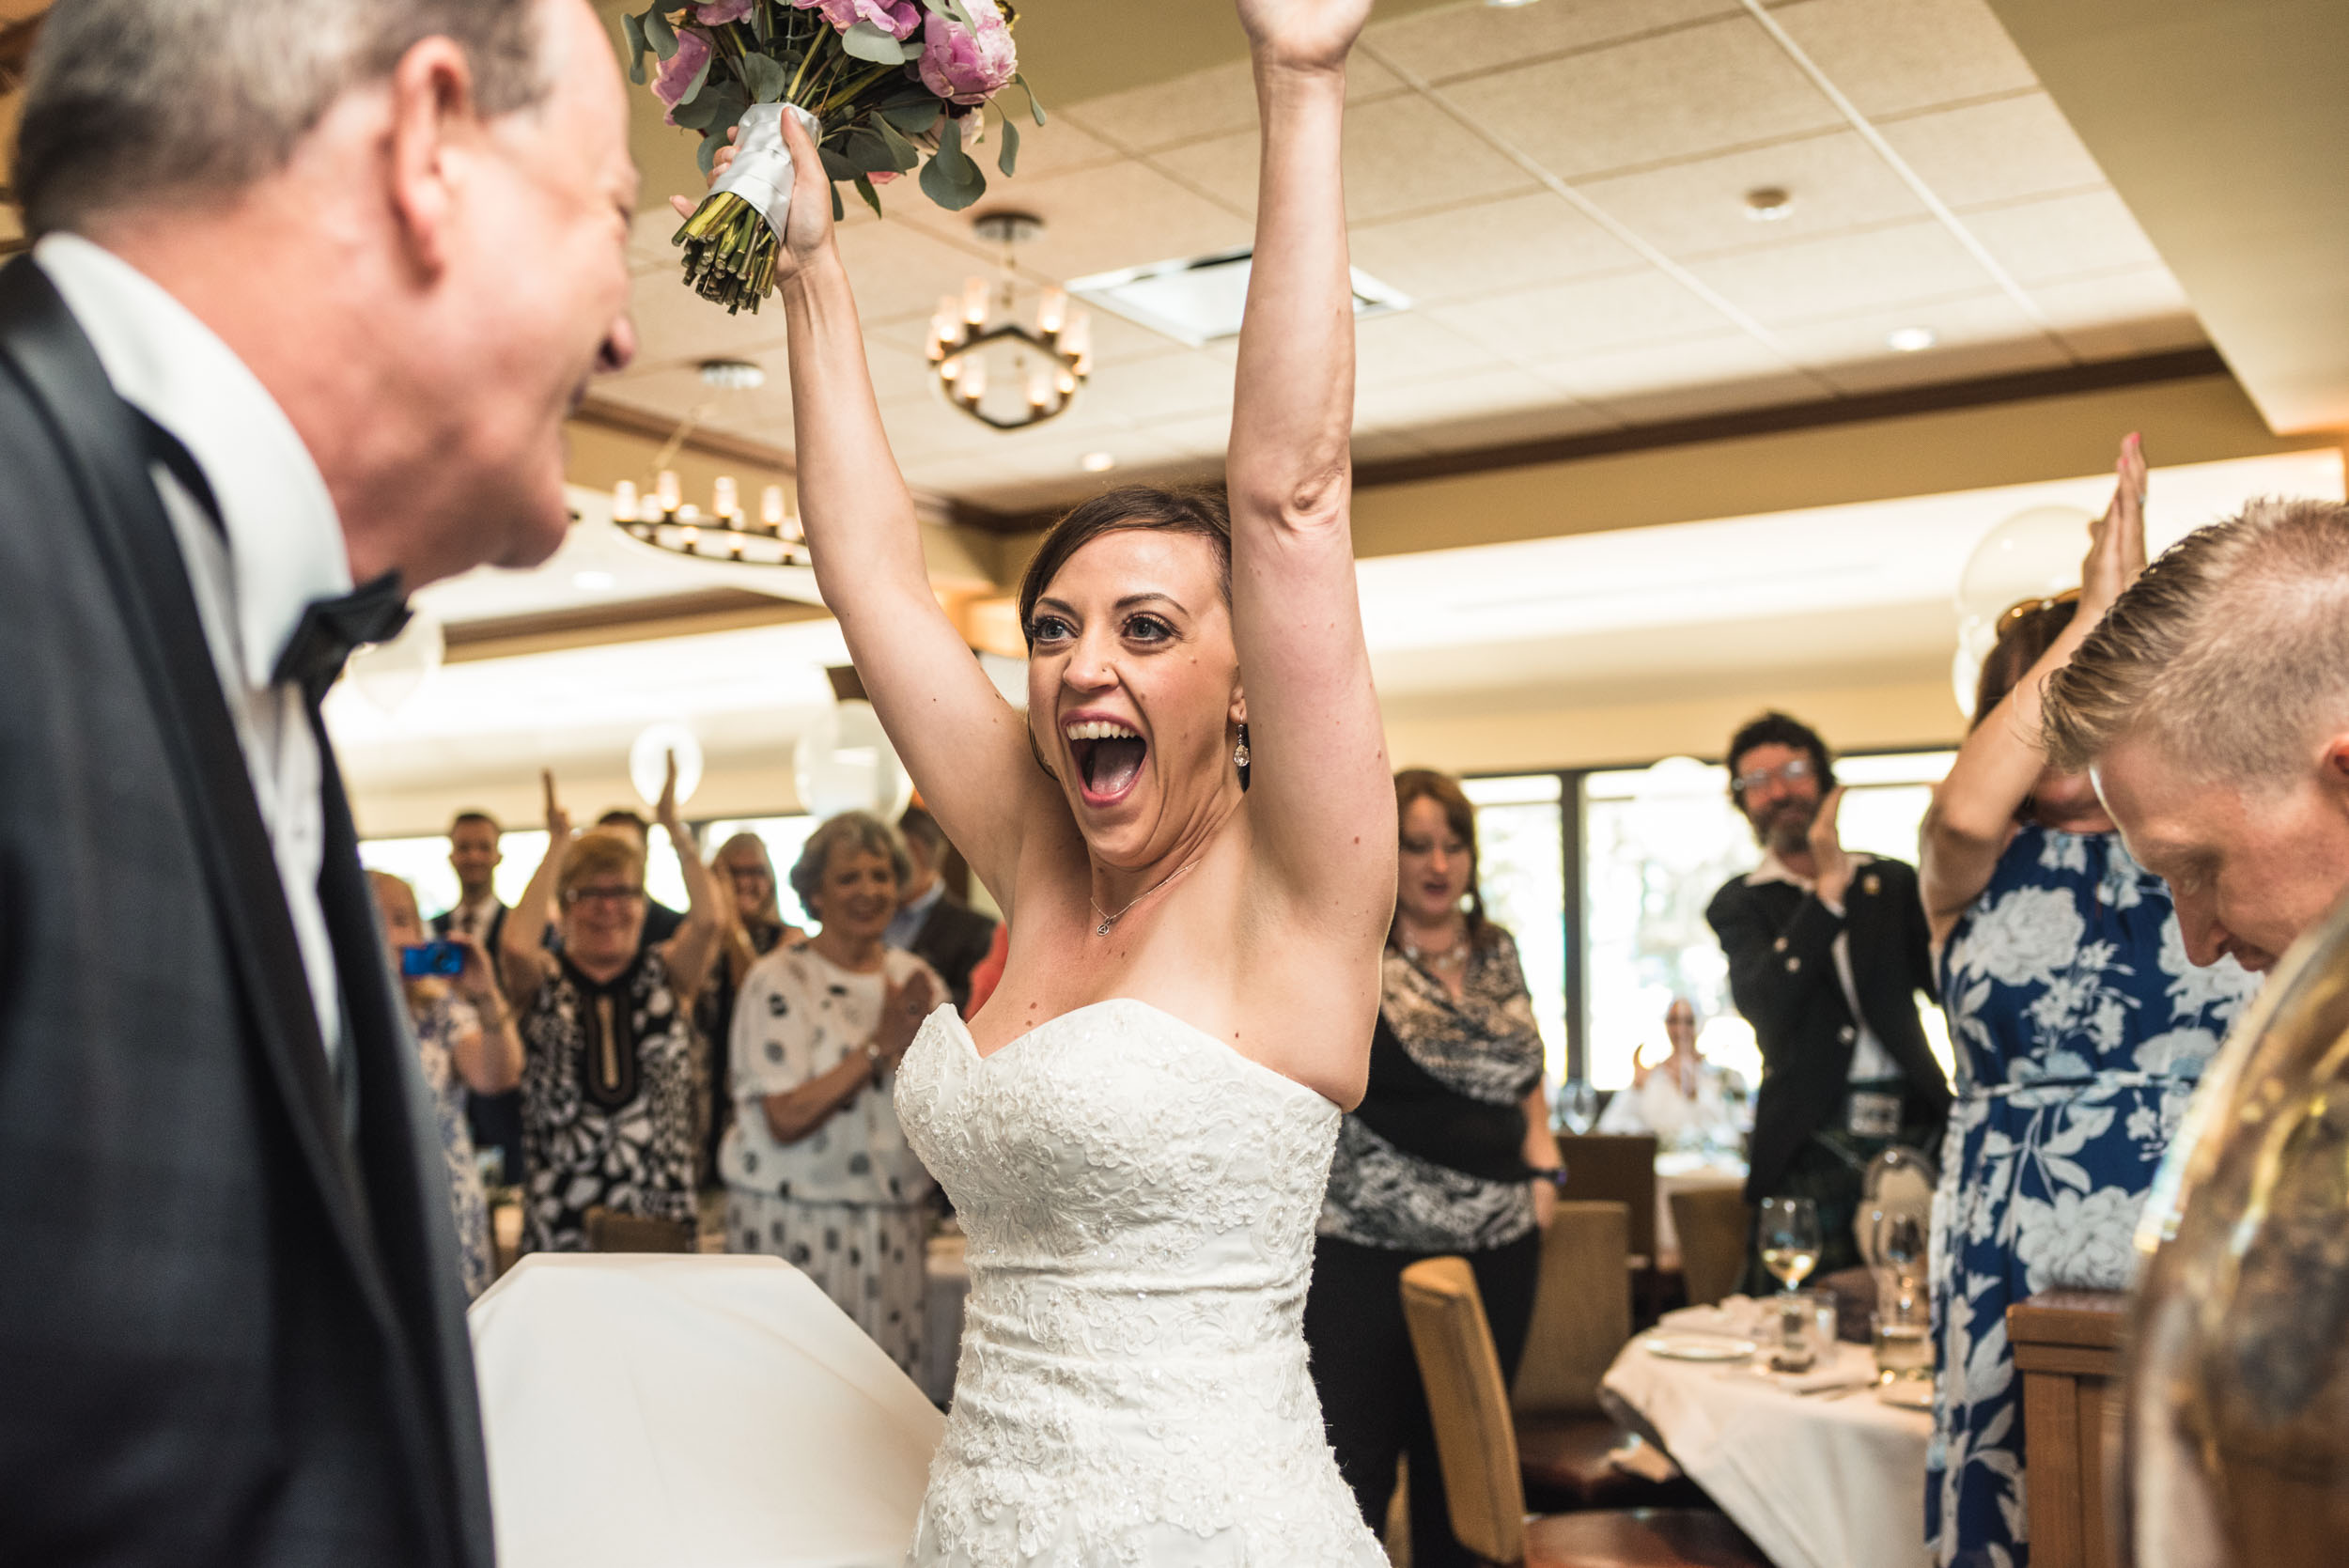 Excited Bride during wedding reception